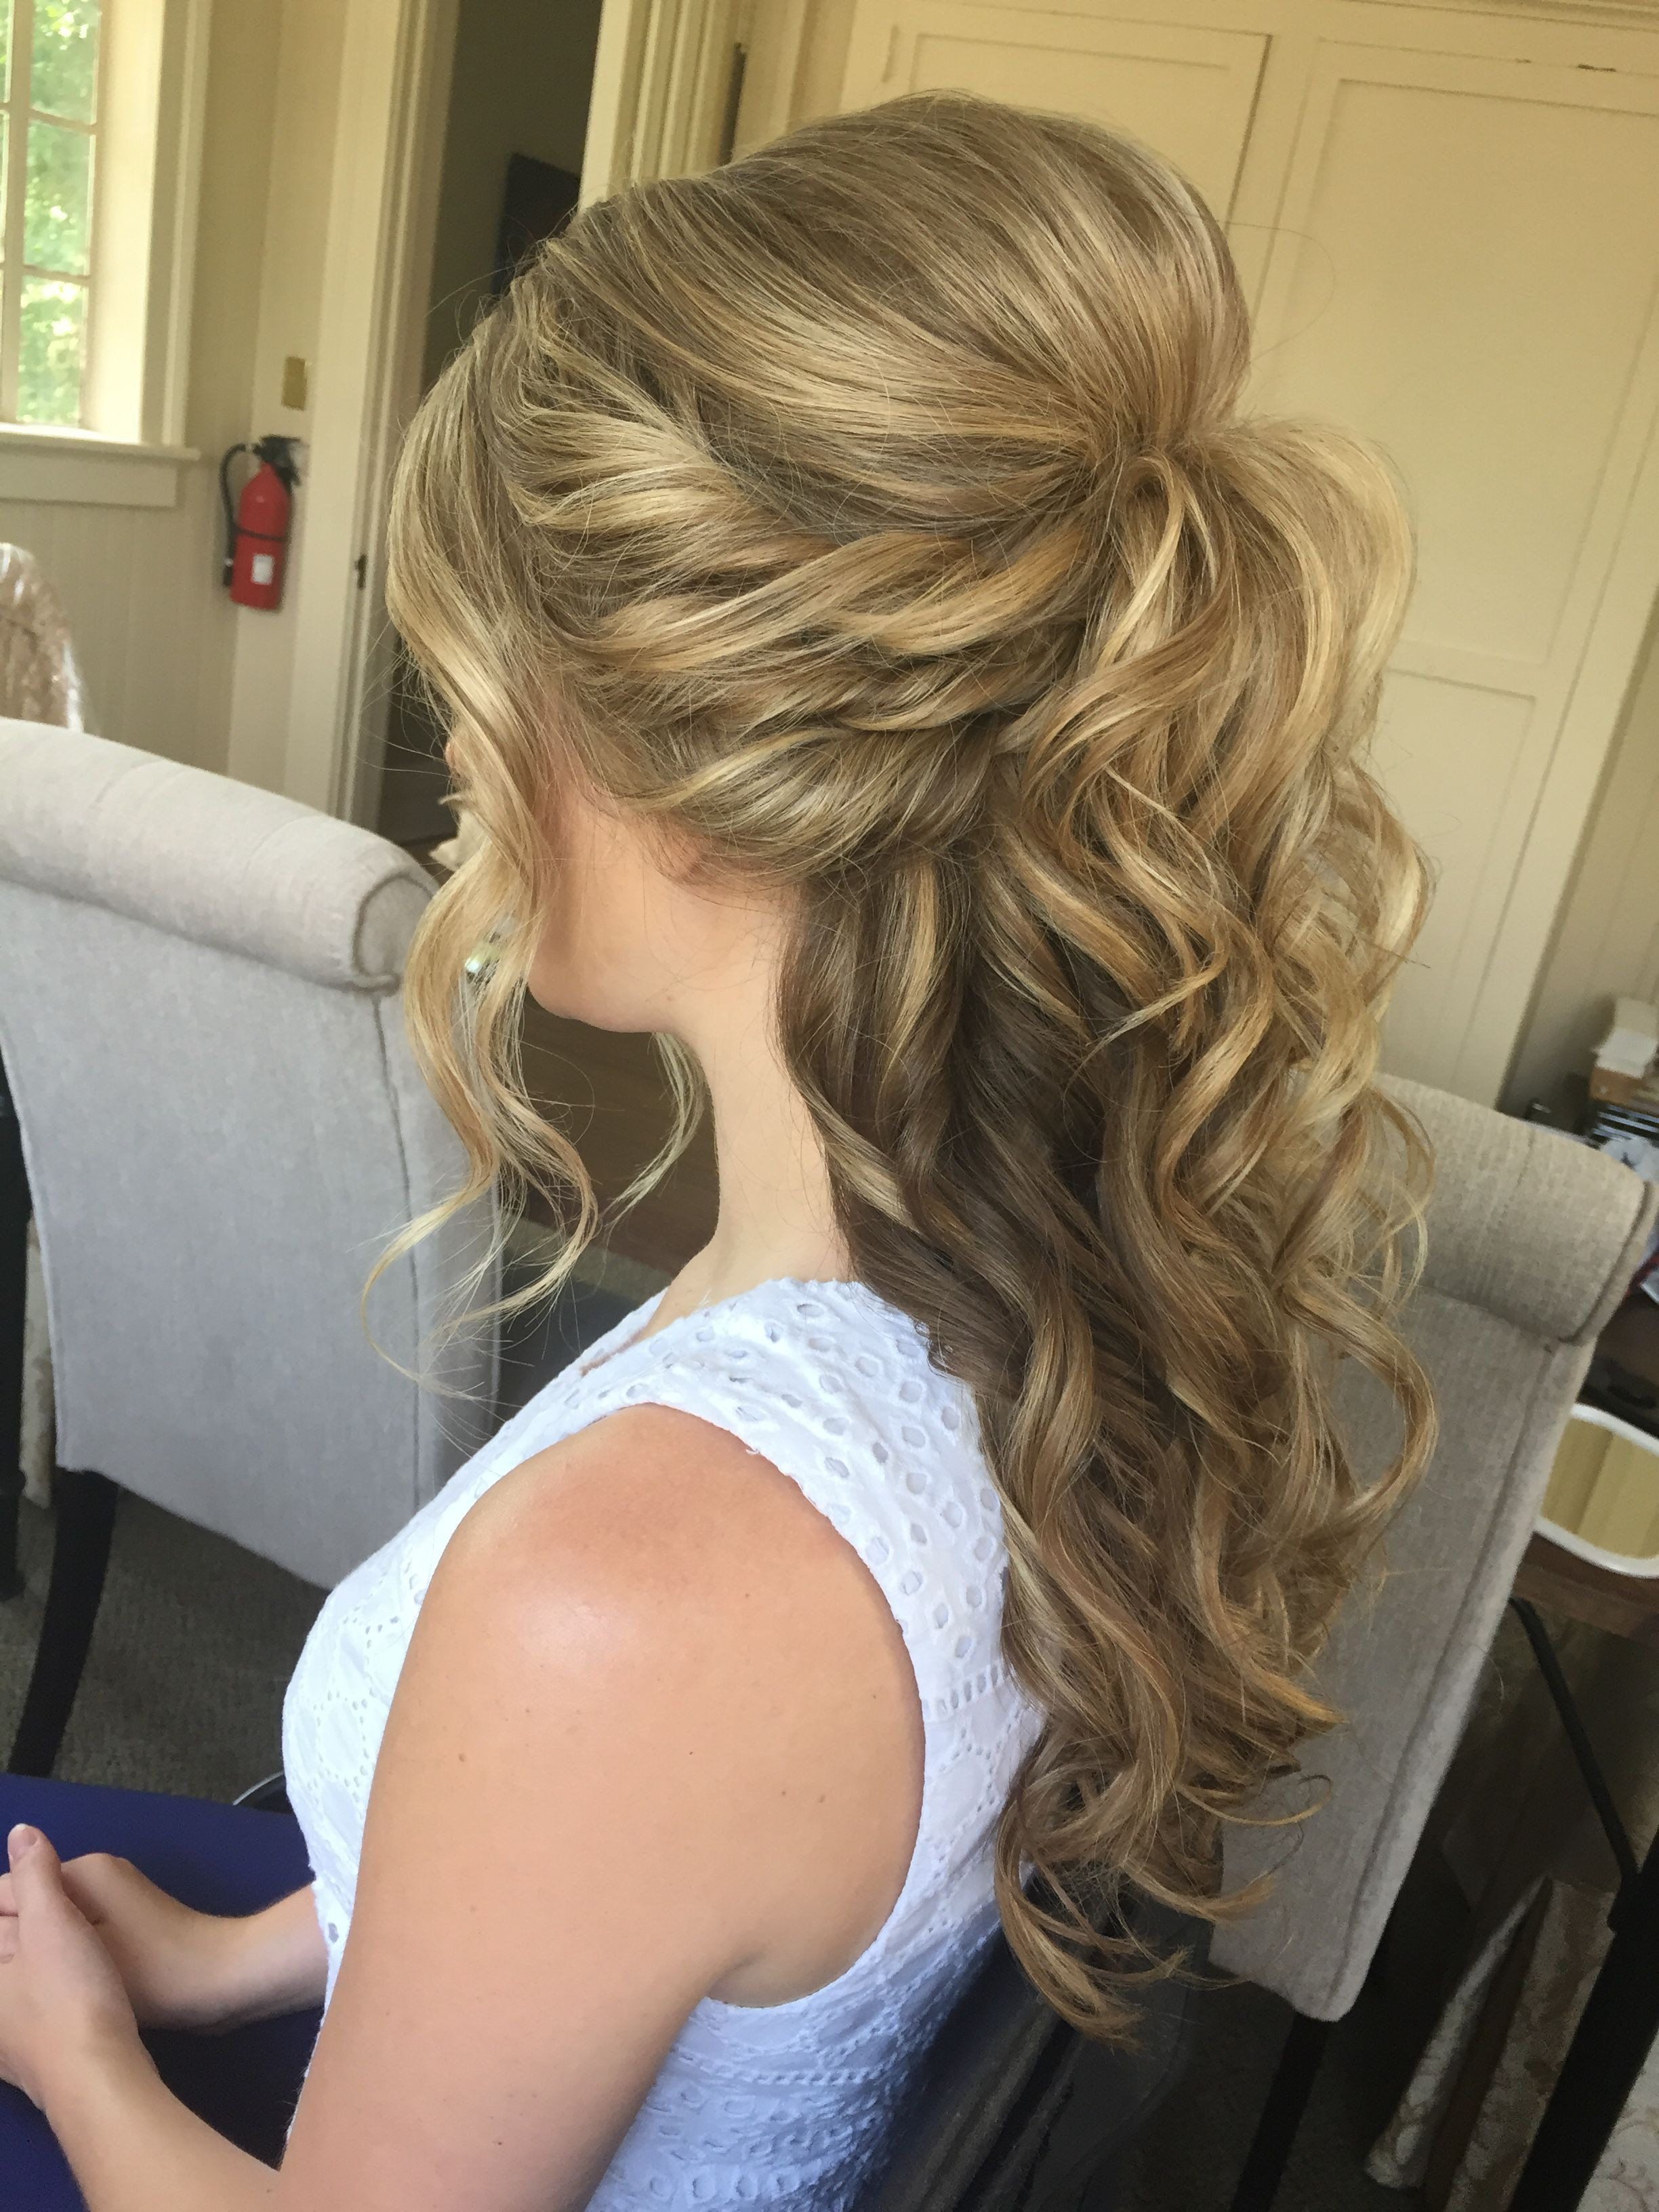 Fashion : Hairstyle Half Up Half Down Curly Enchanting Prom Throughout Trendy Elegant Curled Prom Hairstyles (Gallery 8 of 20)